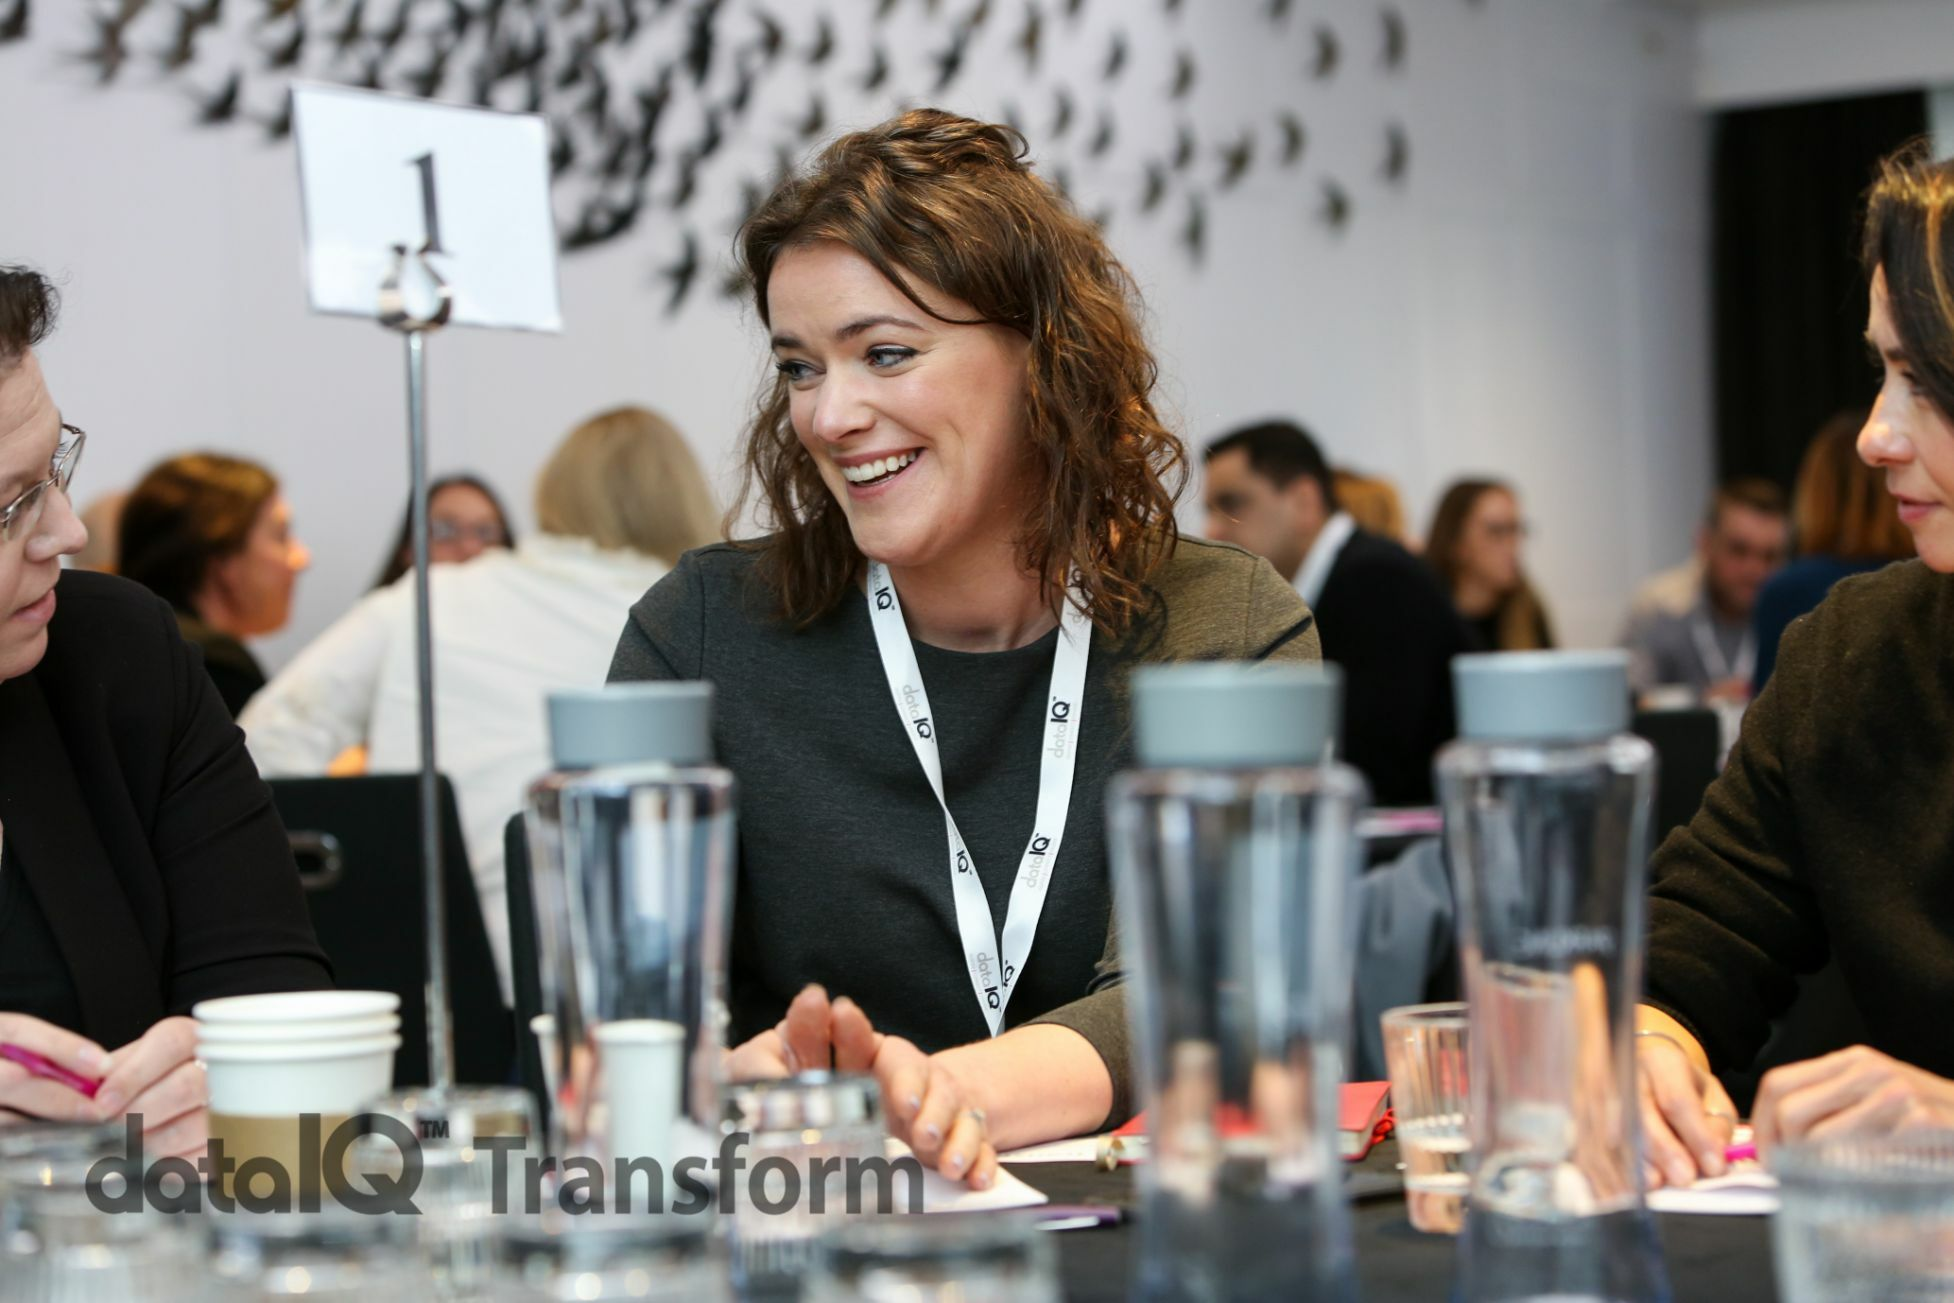 DataIQ Transform 2019 Image 26